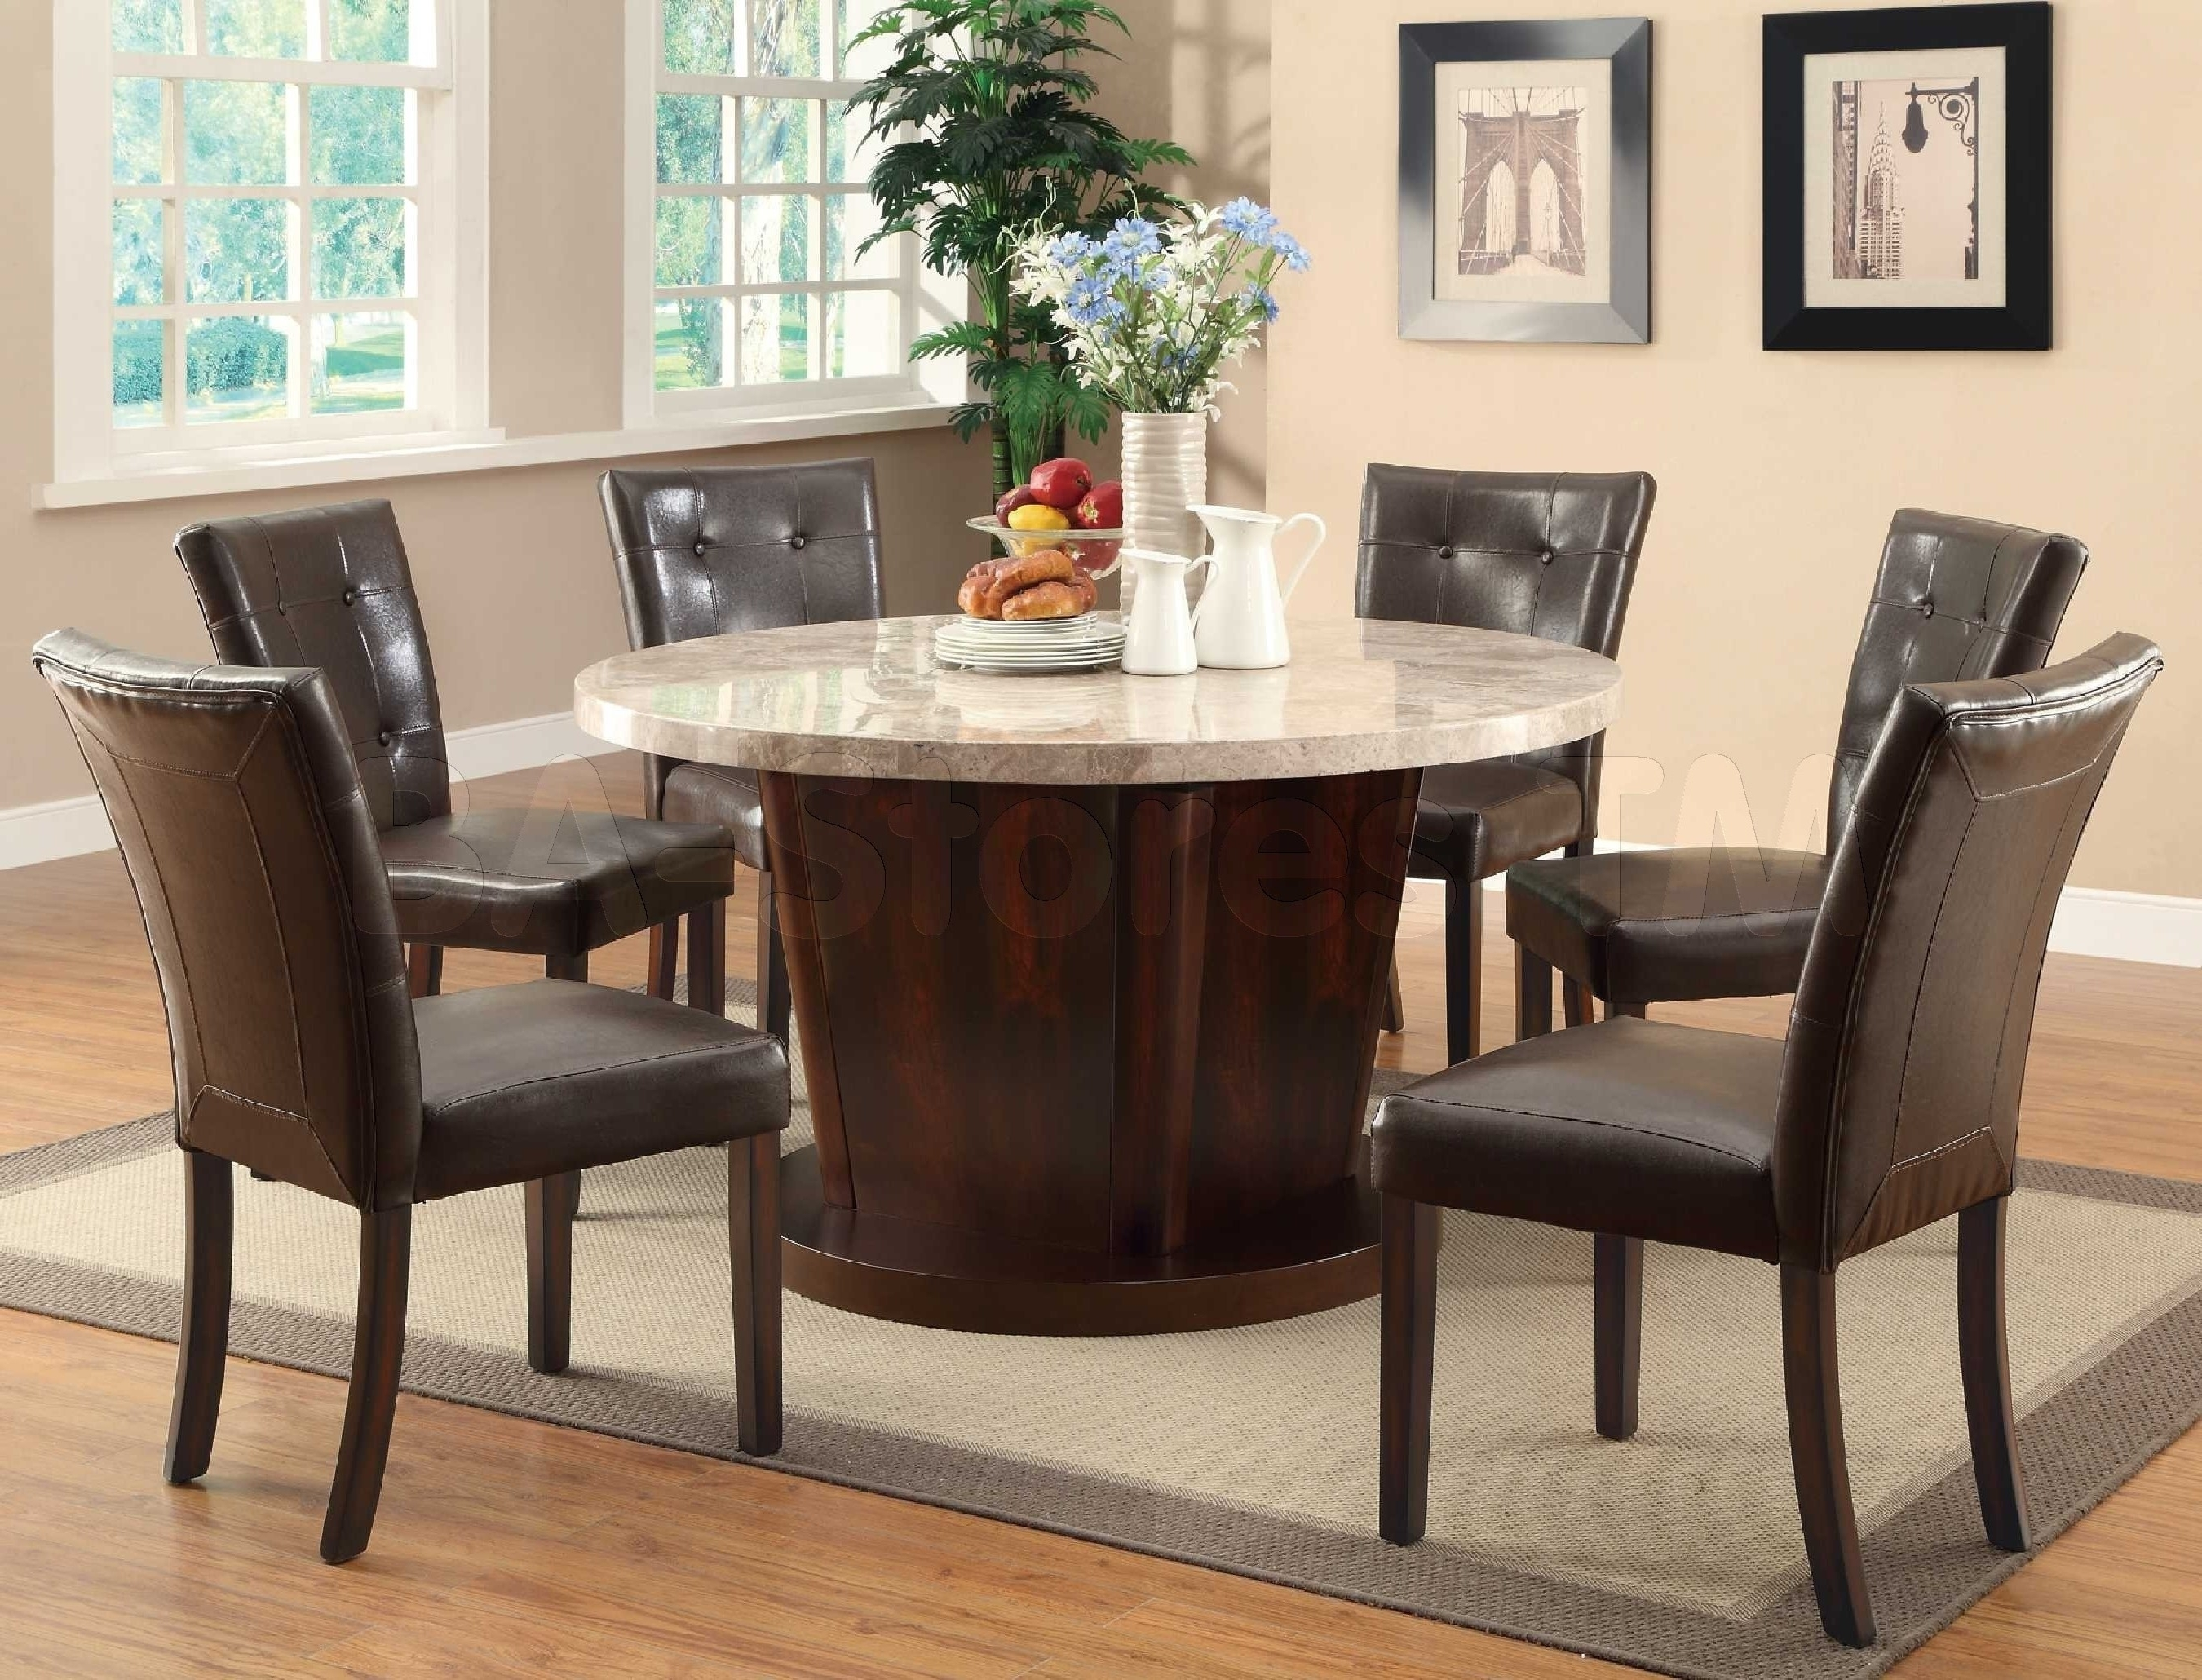 Round 6 Person Dining Tables Within Recent Top 30 Lovely 6 Seater Round Dining Table Dimensions (View 6 of 25)